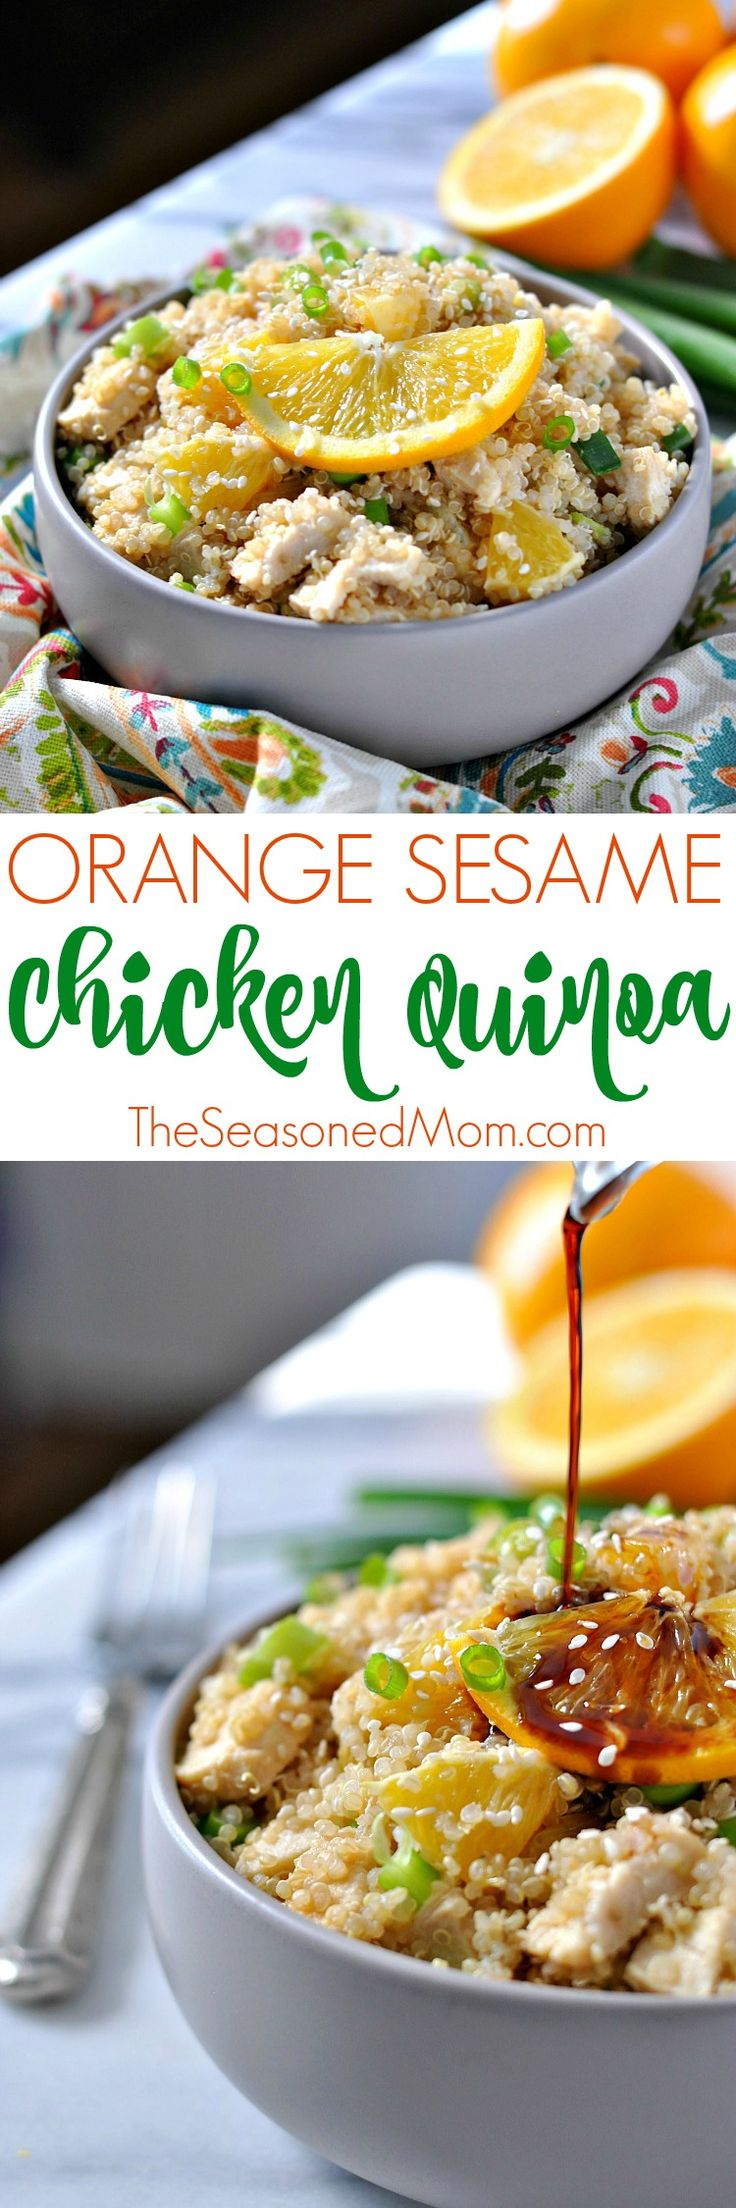 Orange Sesame Chicken Quinoa is a protein-packed healthy lunch or dinner option that comes together easily, can be made in advance, and is bursting with fresh citrus flavor!